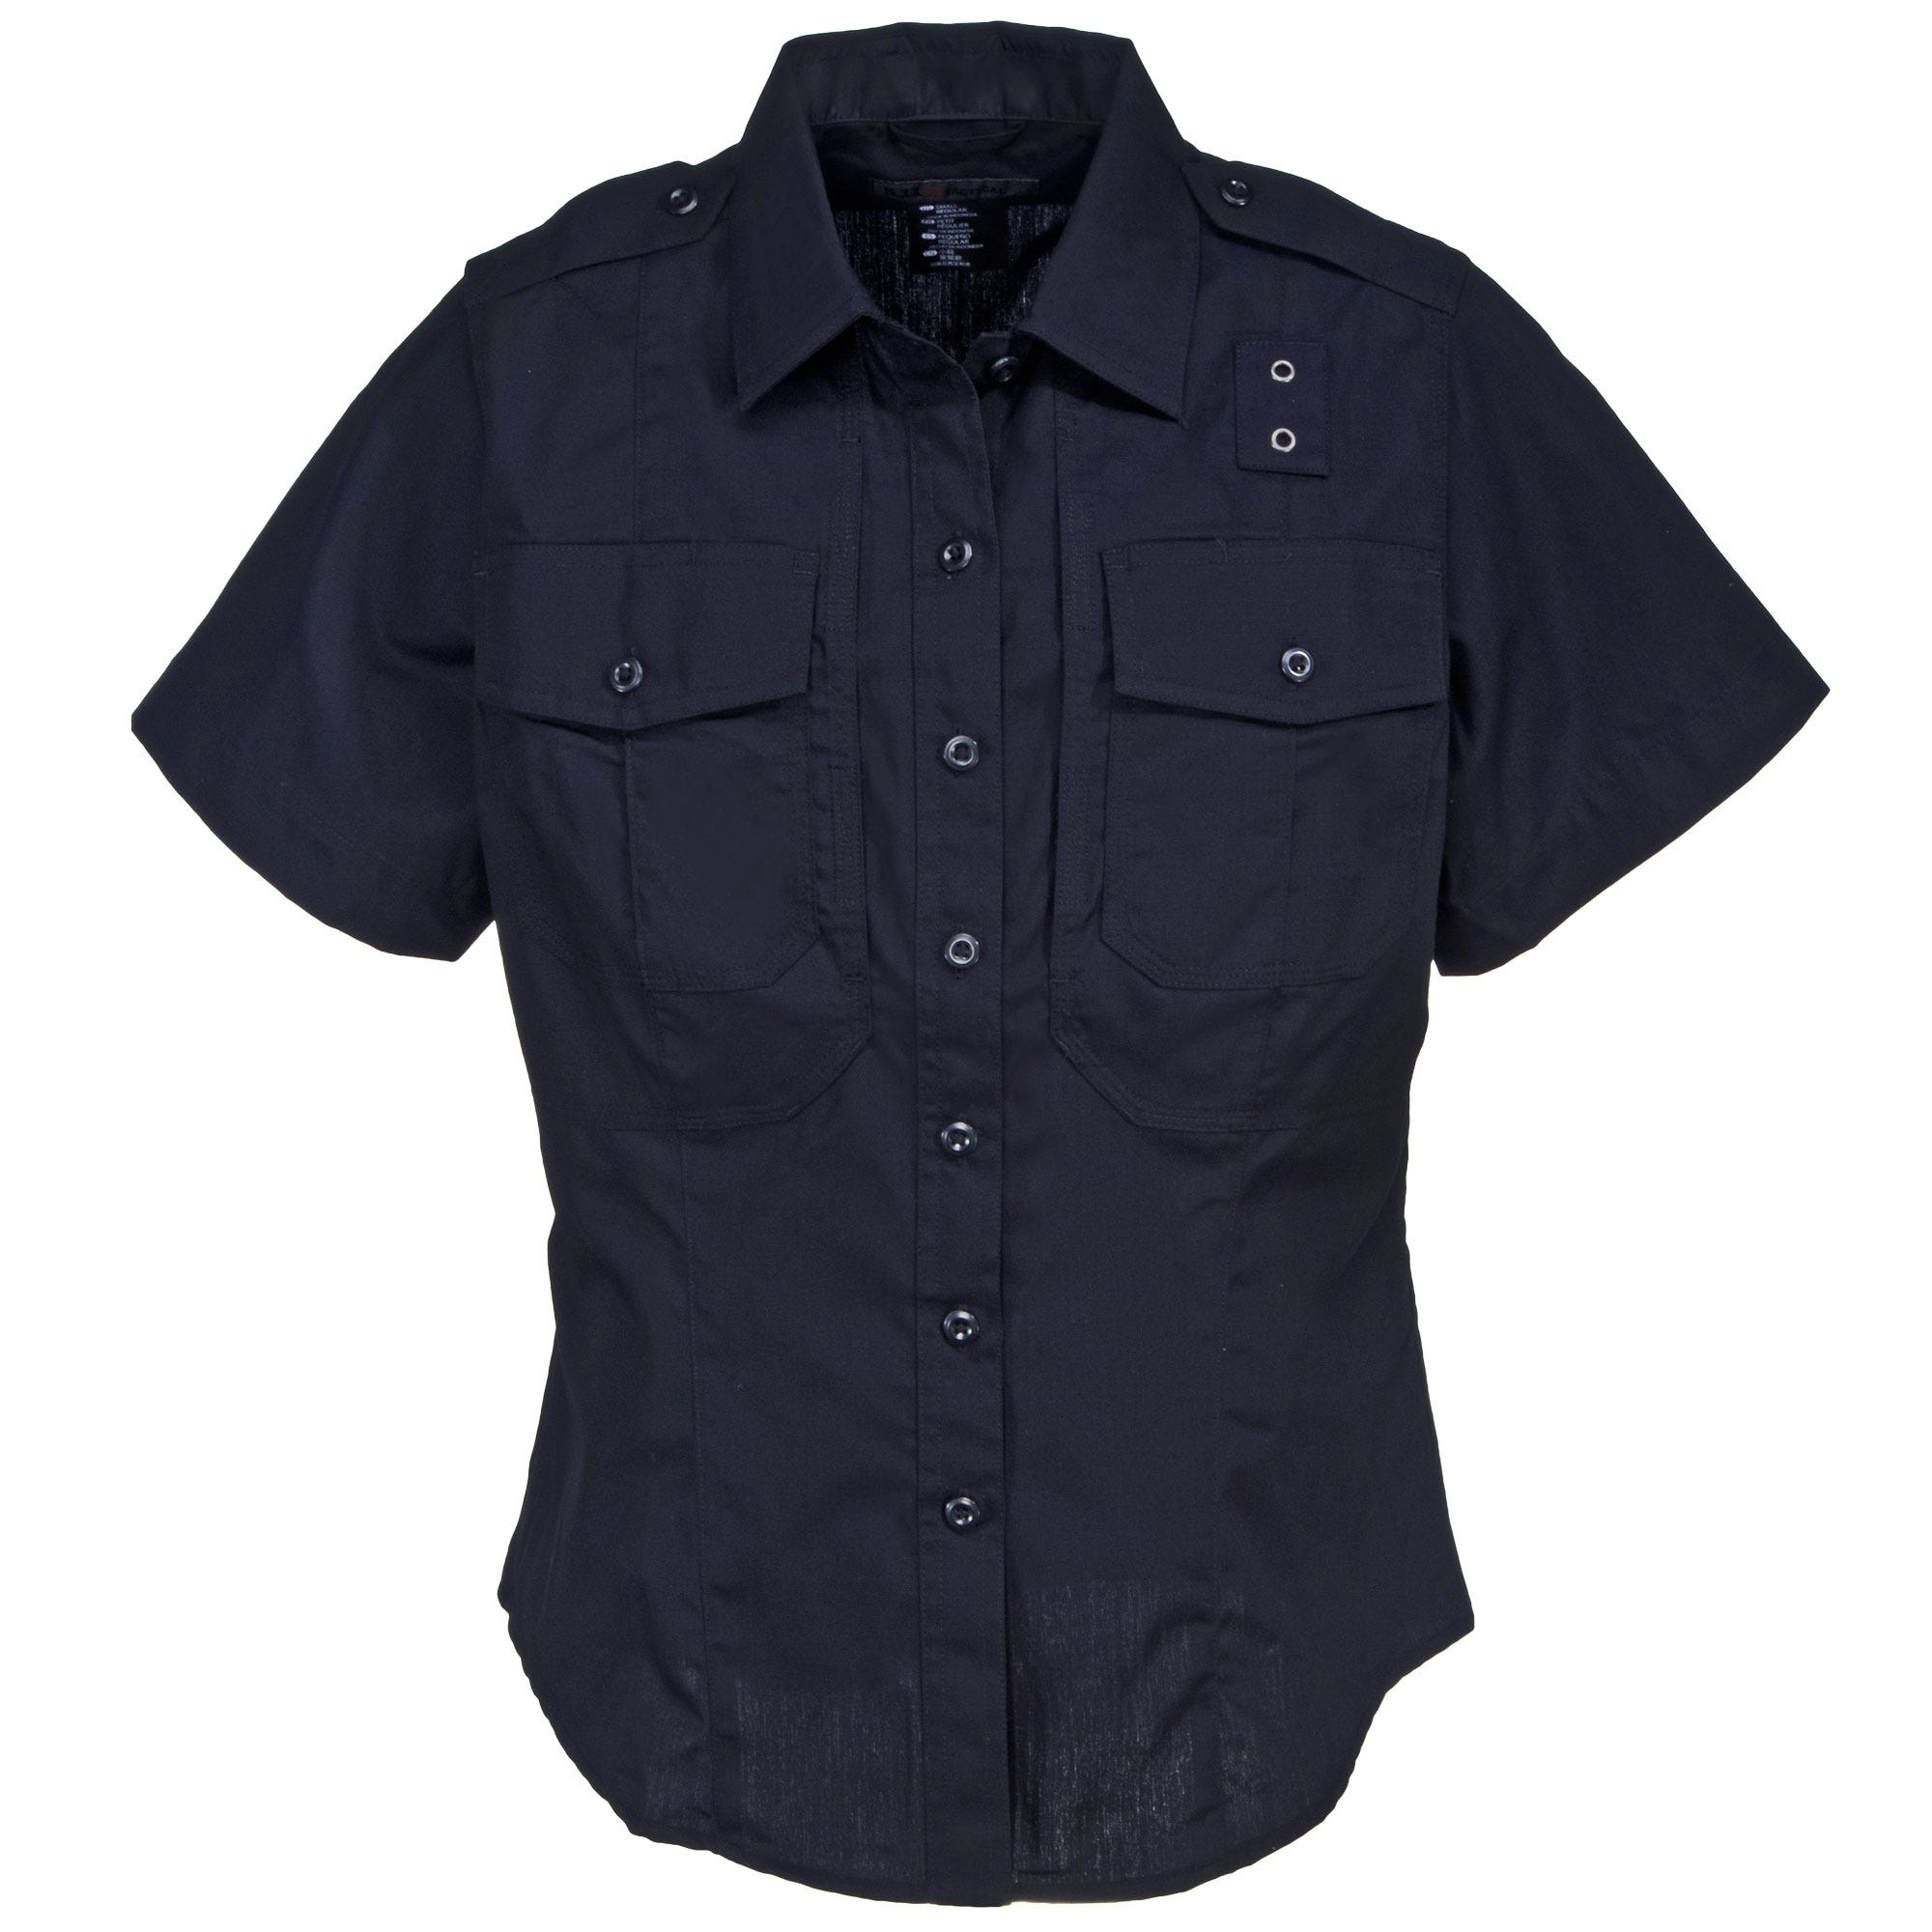 5.11 Tactical Women's Class B 61168 750 Navy Ripstop Shirt